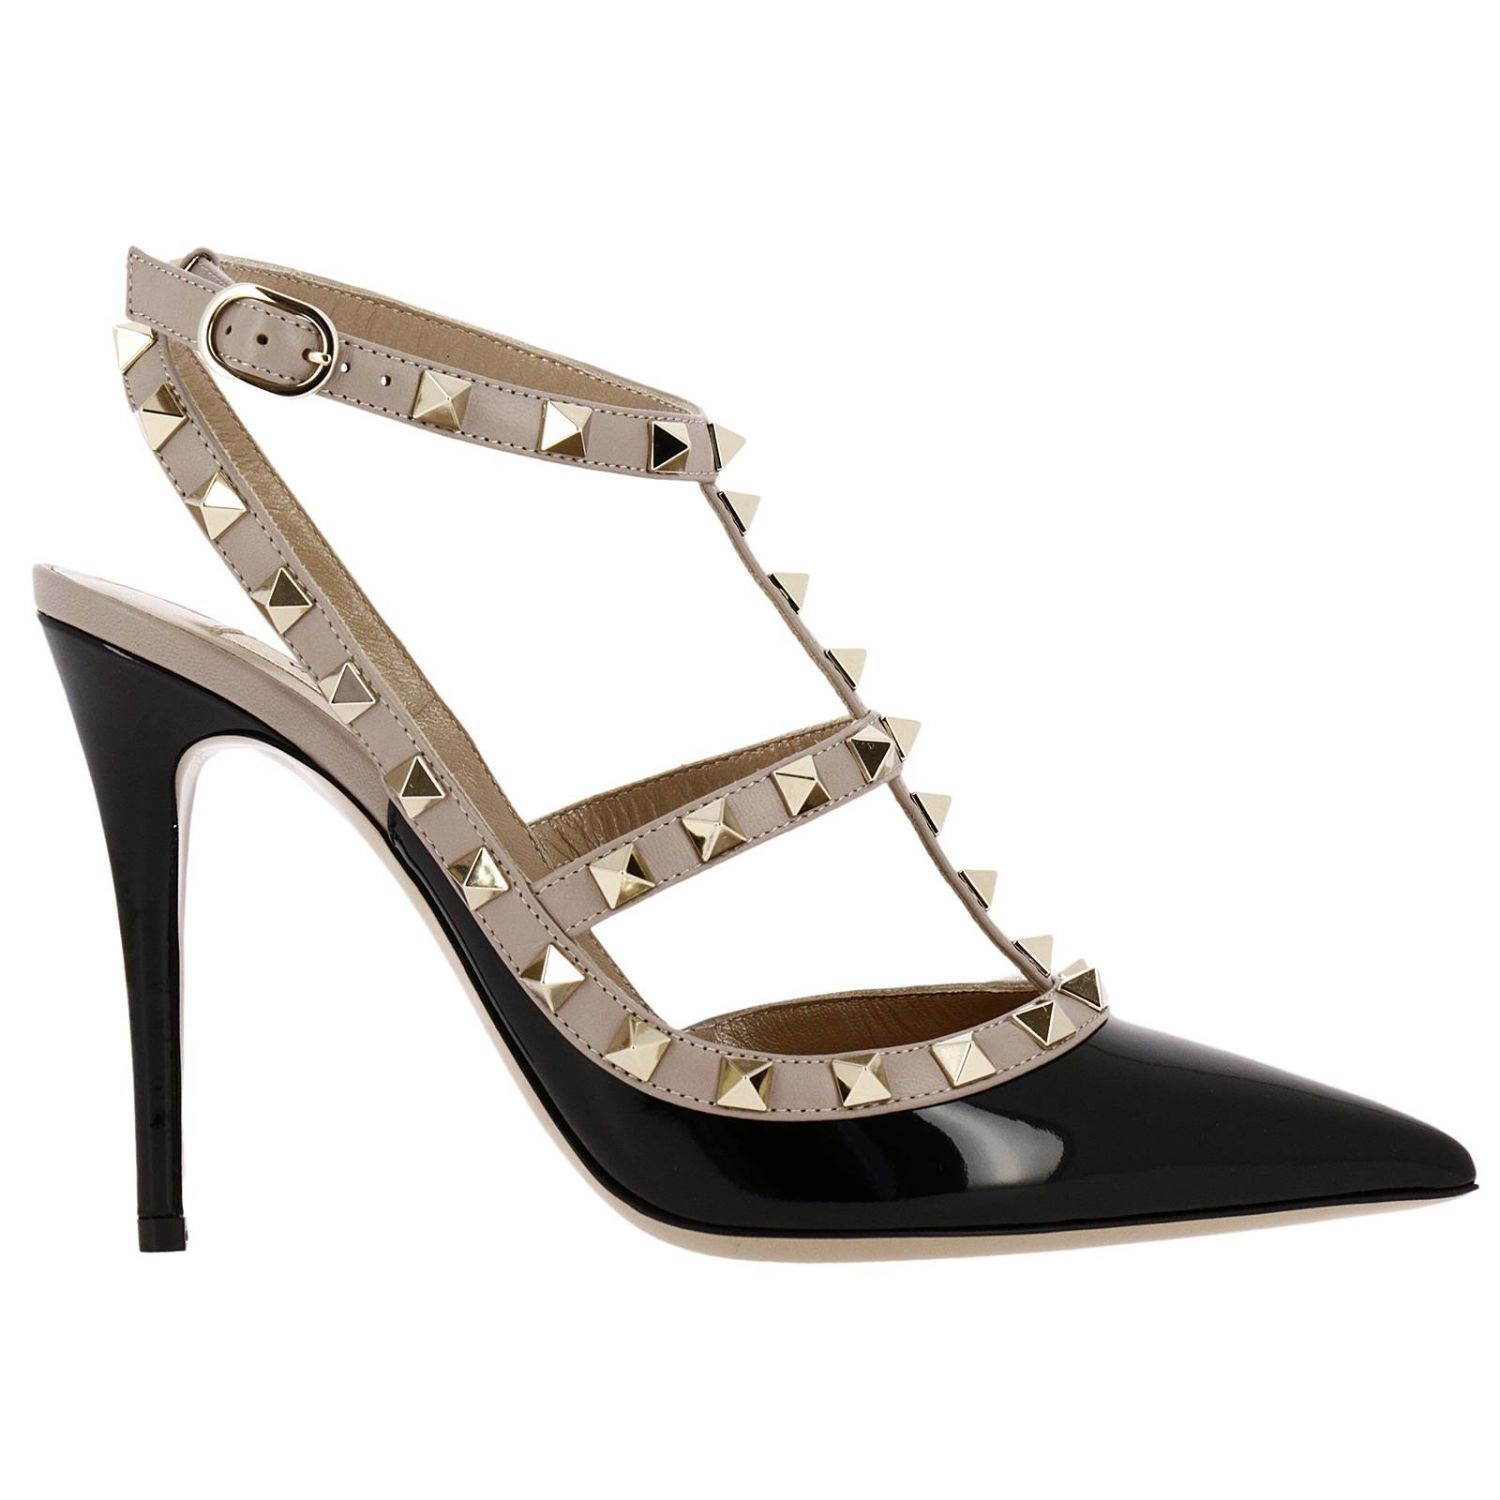 Pumps Valentino Rockstud Ankle Strap In Genuine Patent Leather With Micro Metal Studs 8286866